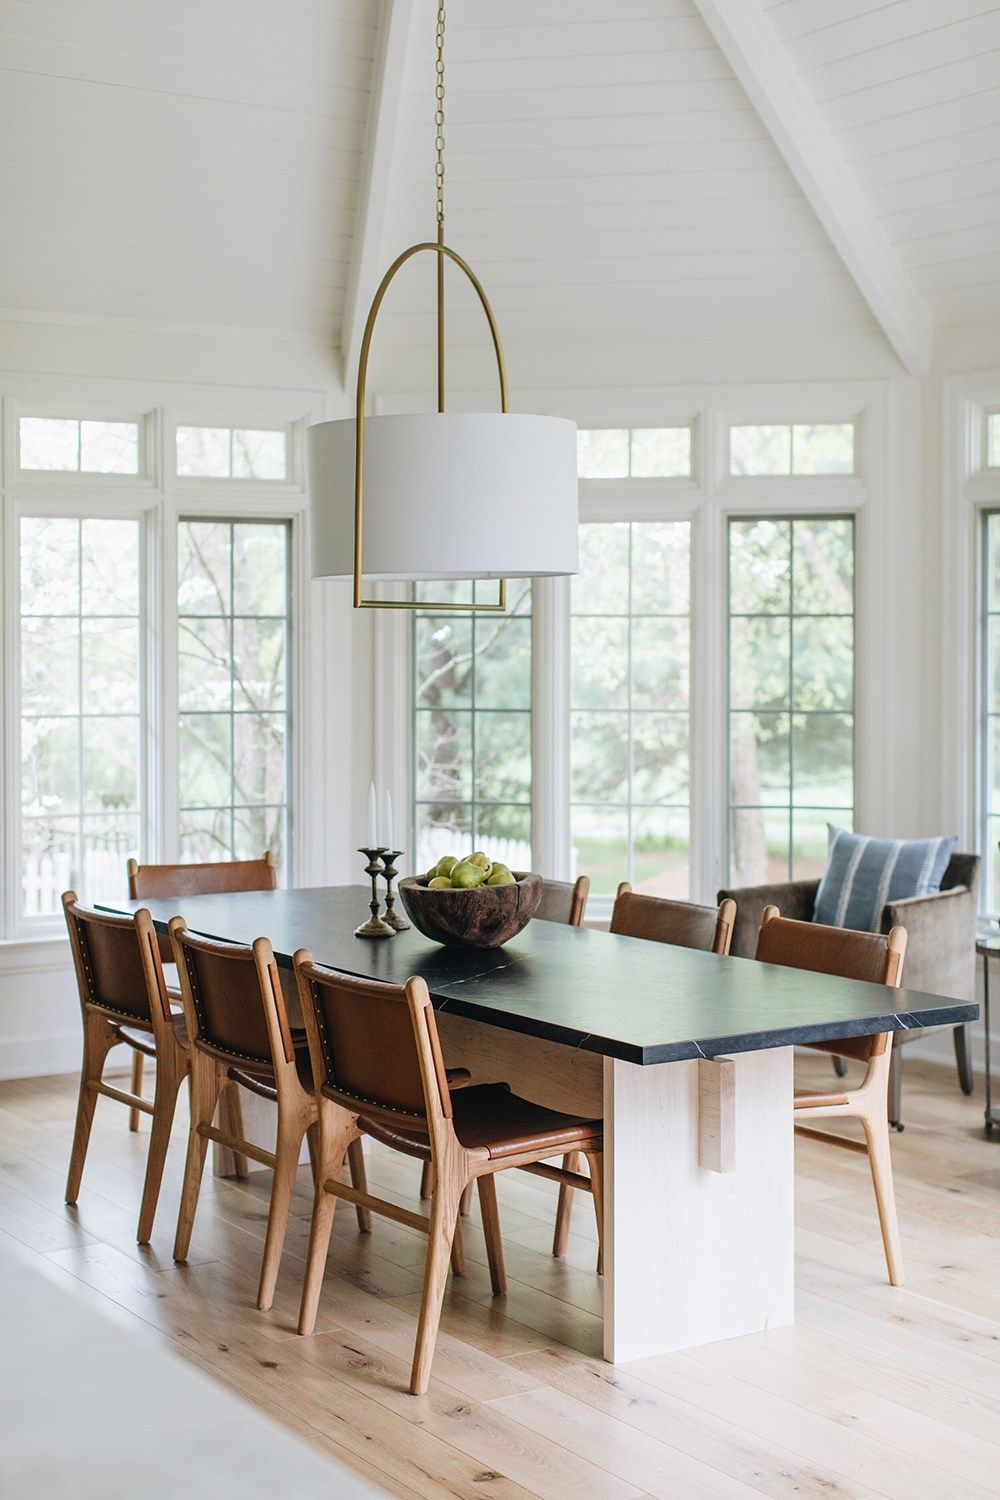 10 Pins Pinterest Inspiration Room For Tuesday Blog Classic Dining Room Large Dining Room Table Dining Room Design